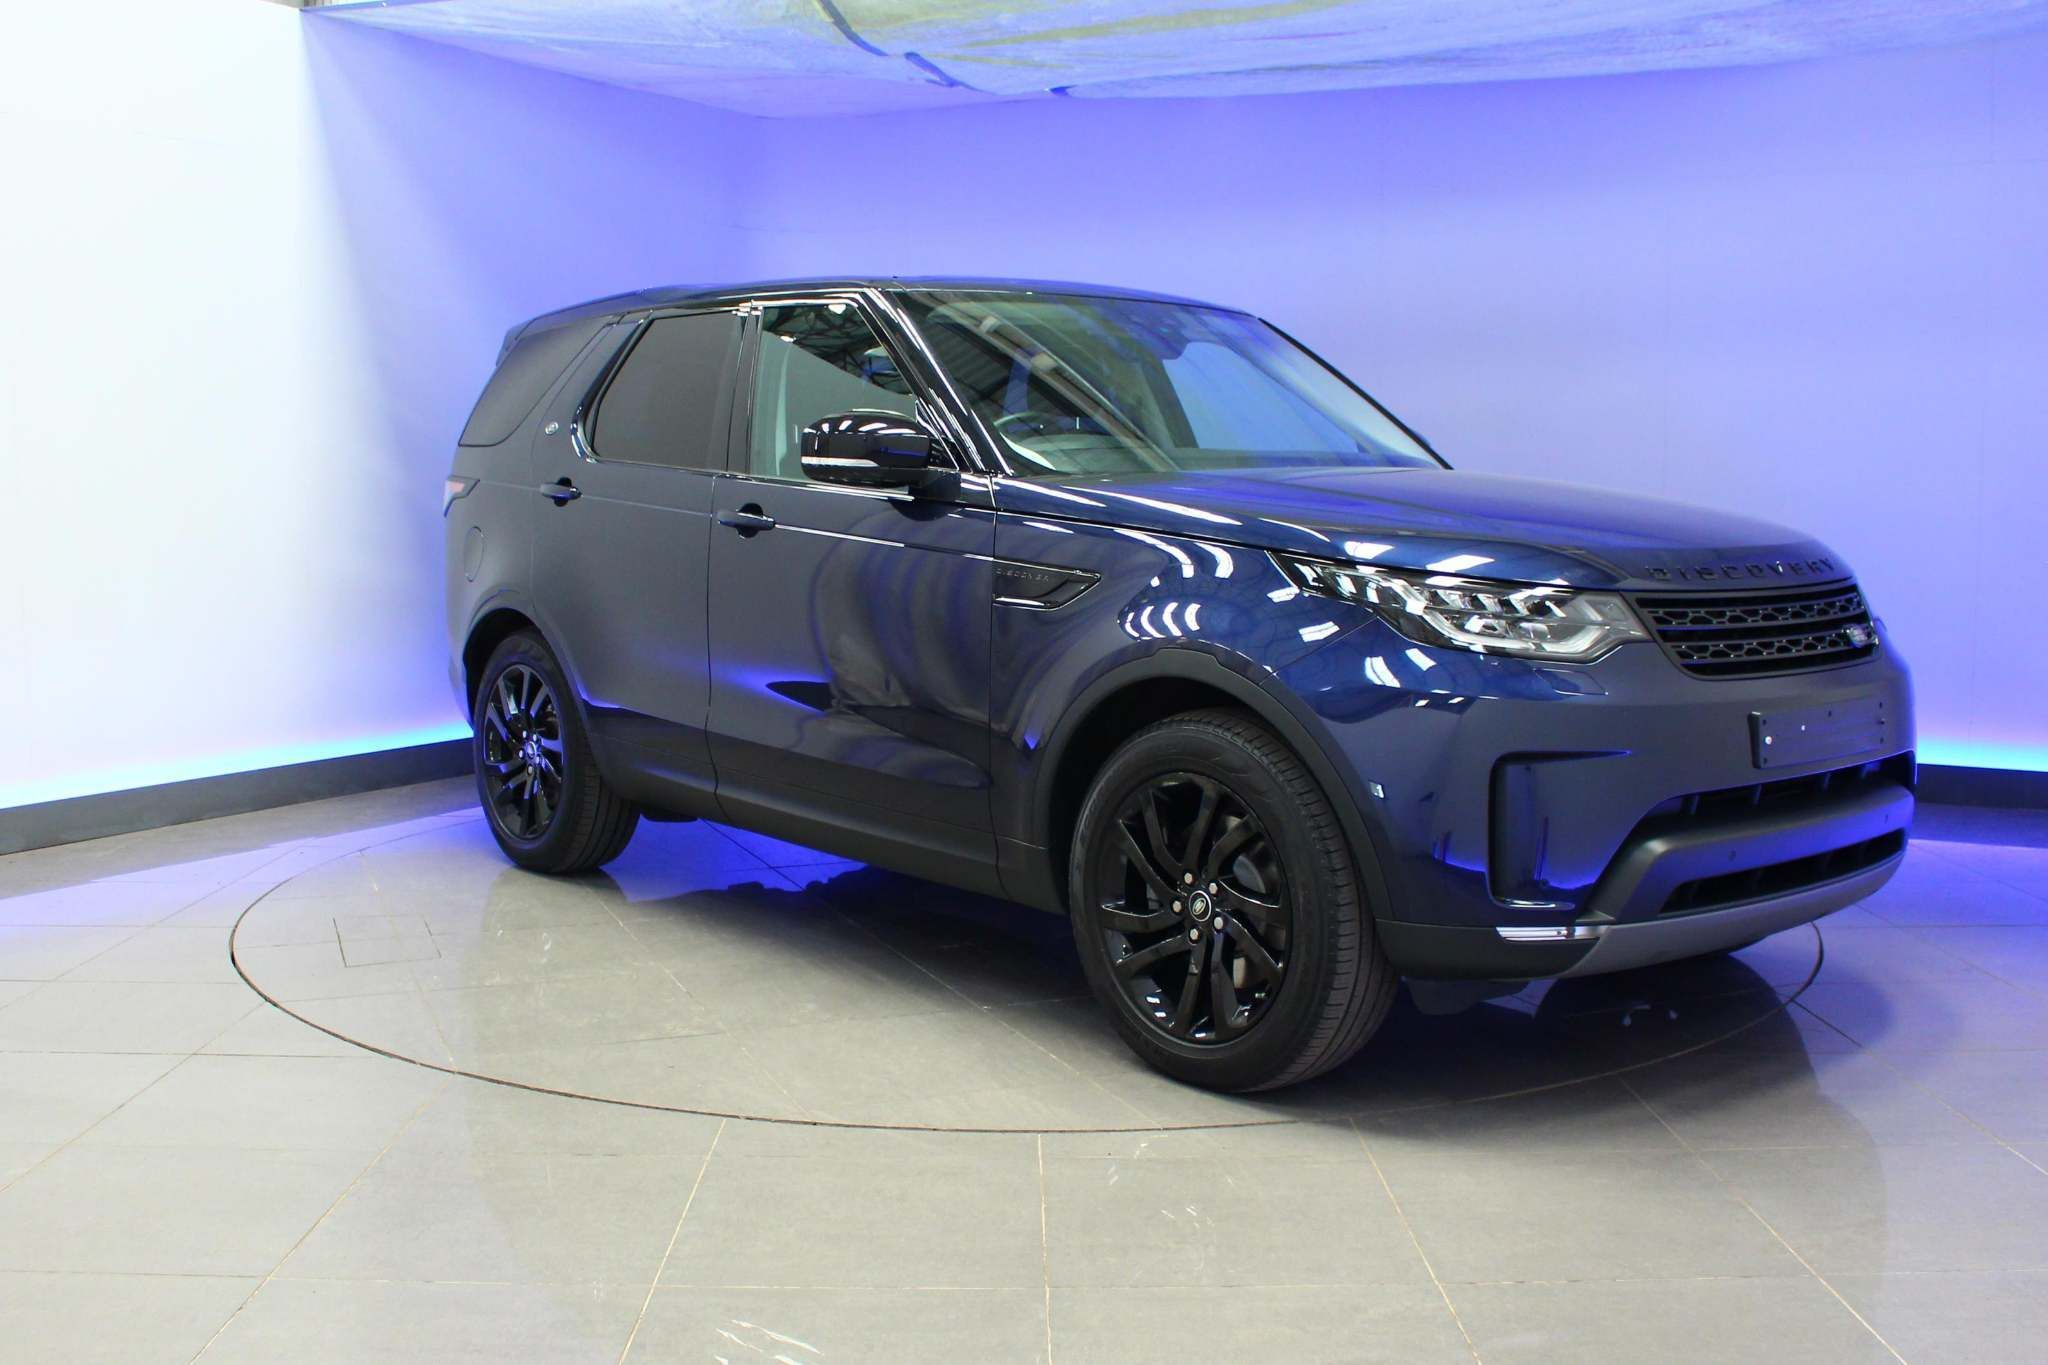 Used Land Rover Discovery 2.0 Sd4 Se Auto 4wd (s/s) 5dr